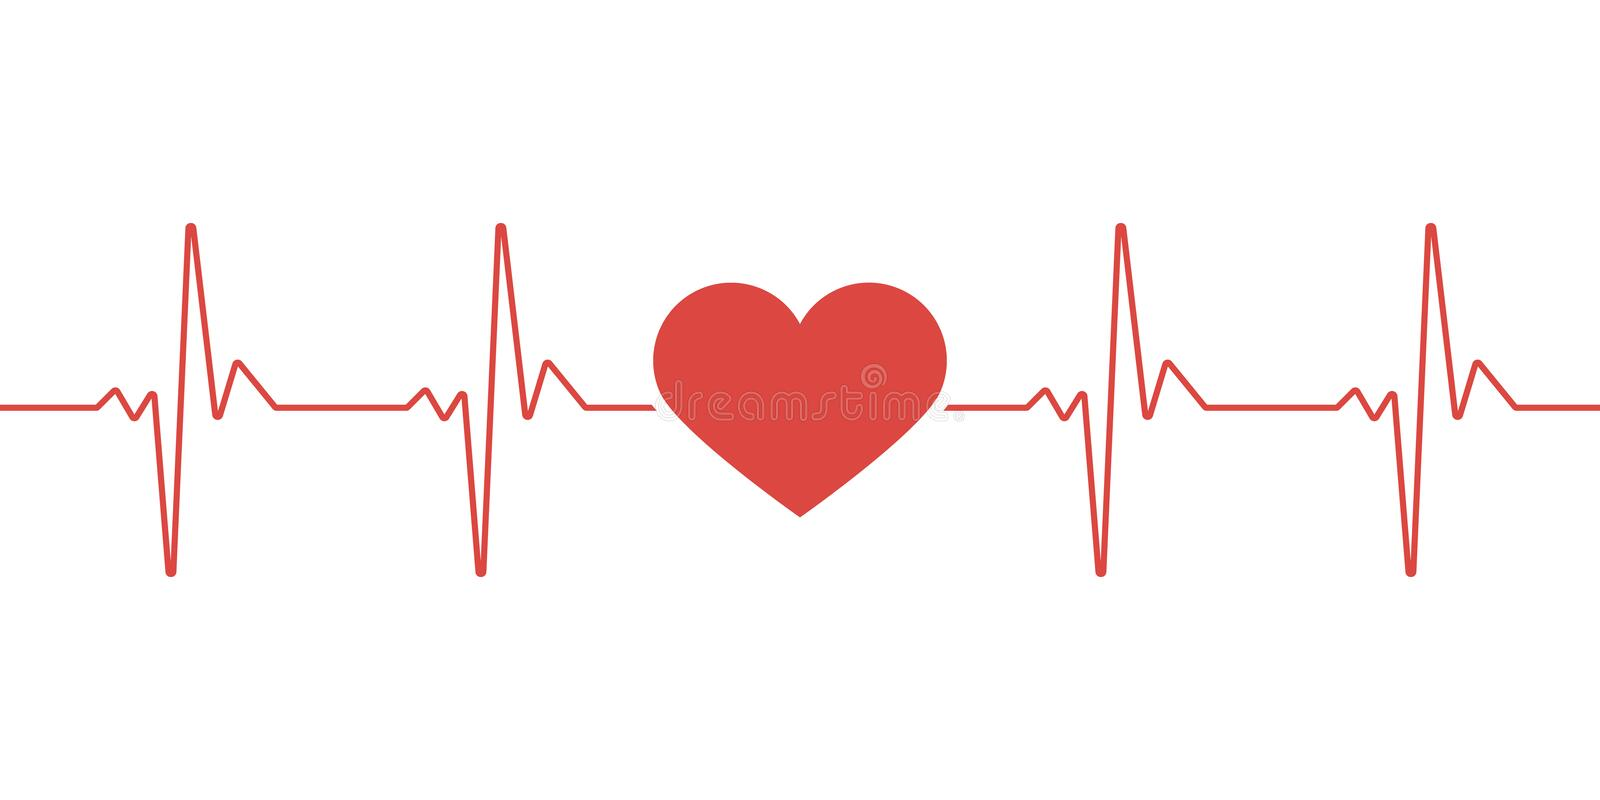 Heart pulse. Red and white colors. Heartbeat lone, cardiogram. Beautiful healthcare, medical background. Modern simple design. stock photos